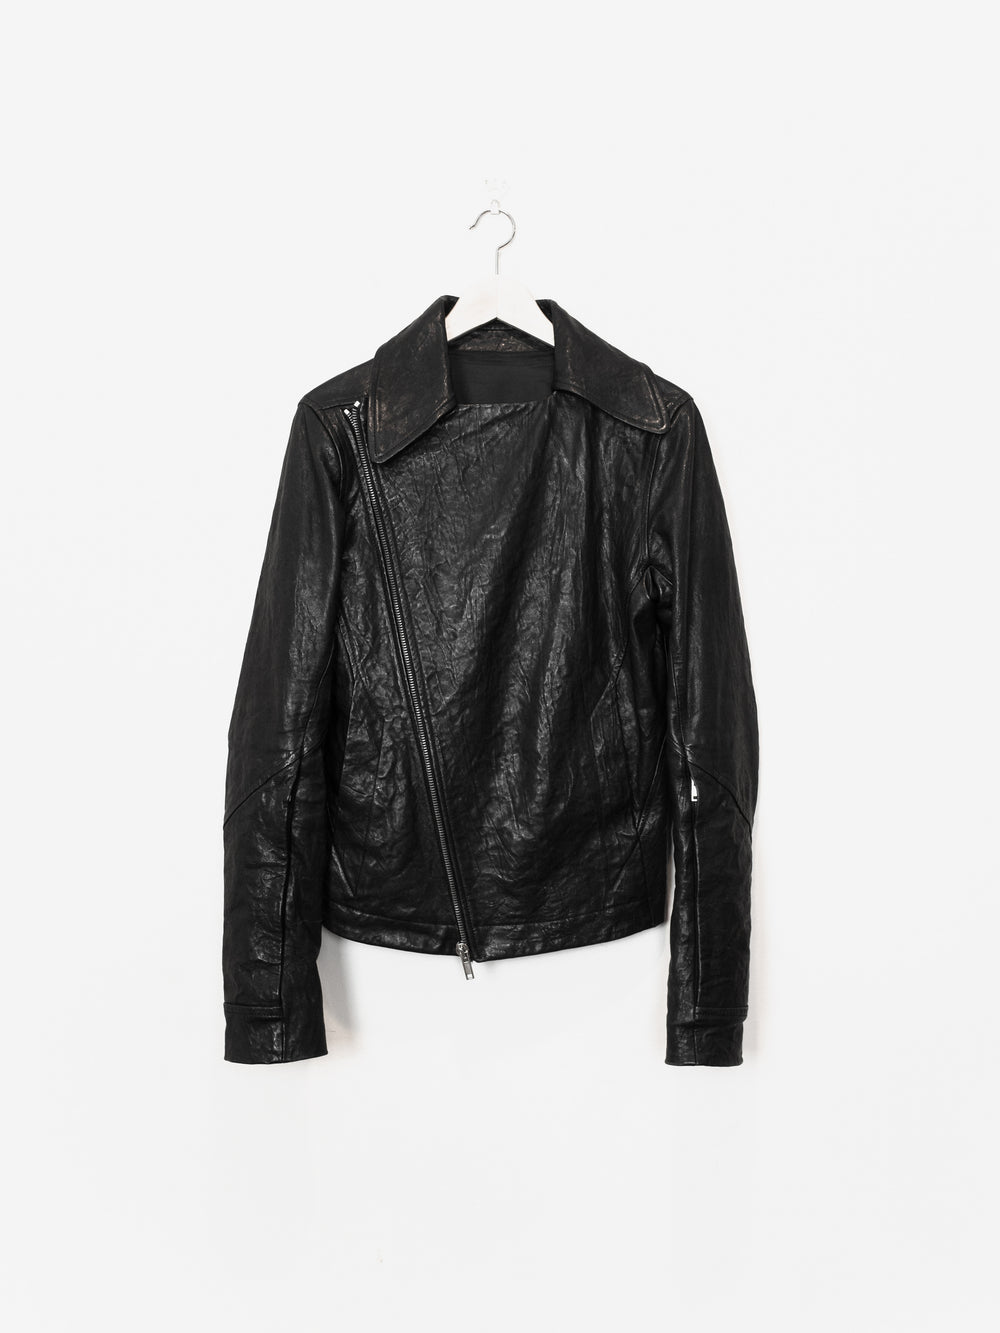 Rick Owens AW09 Berger Leather Jacket